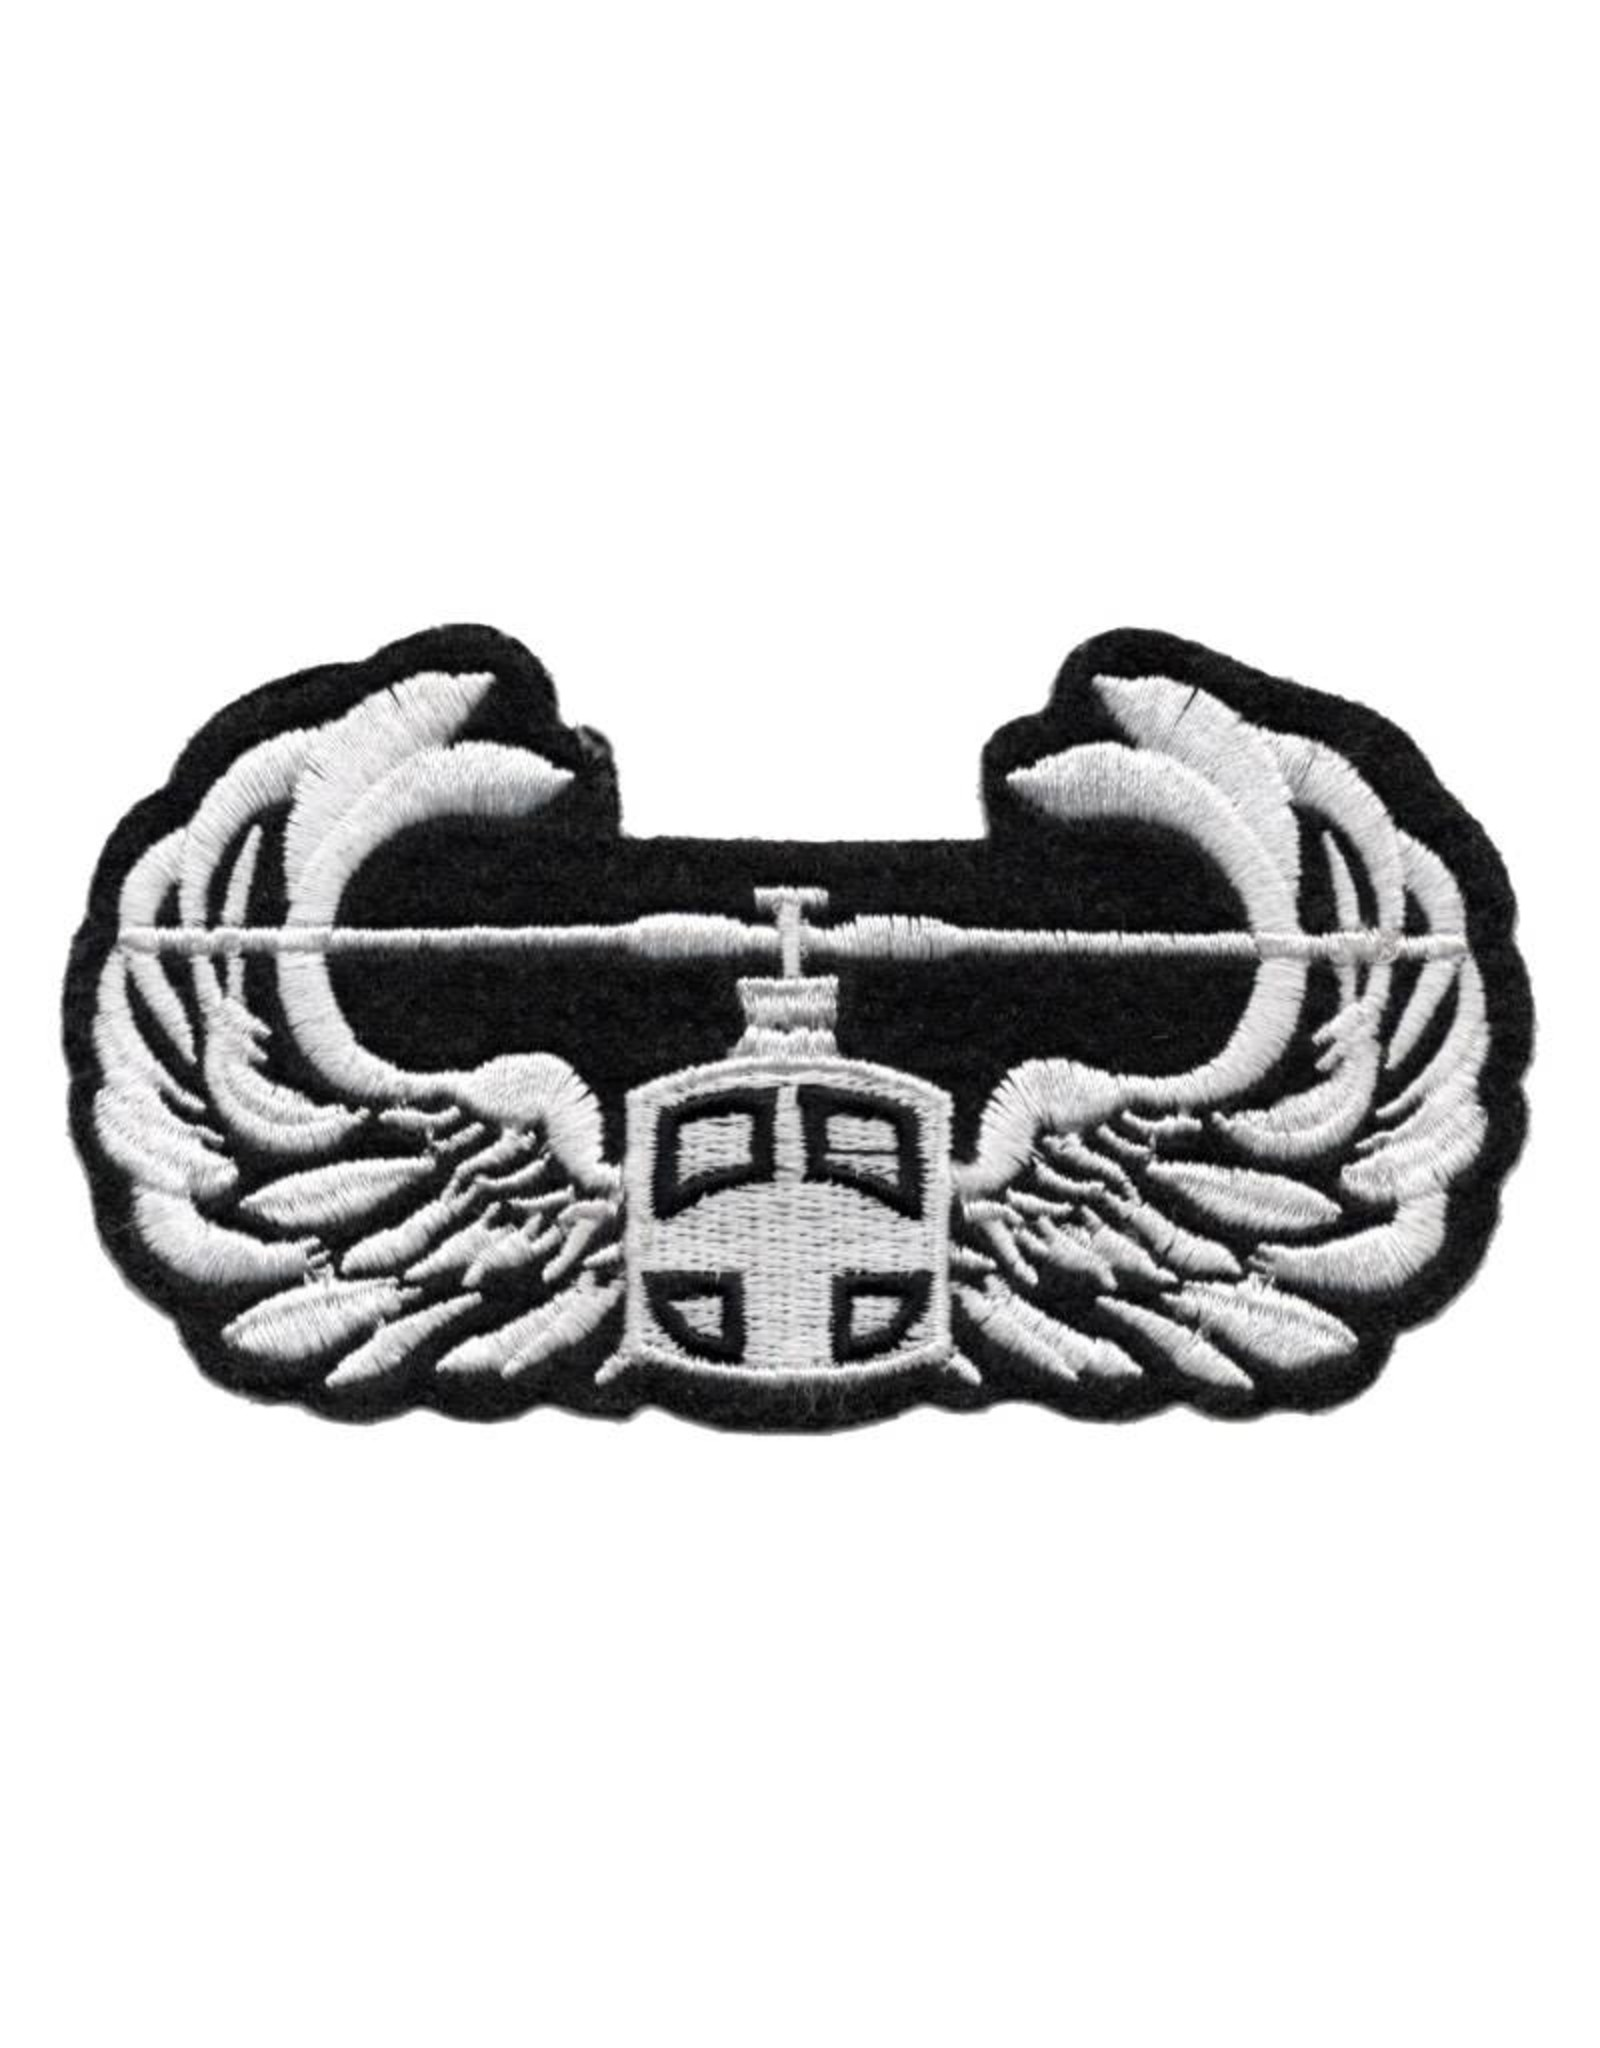 """MidMil Embroidered Army Air Assault Emblem Patch 4.3"""" wide x 2.4"""" high"""